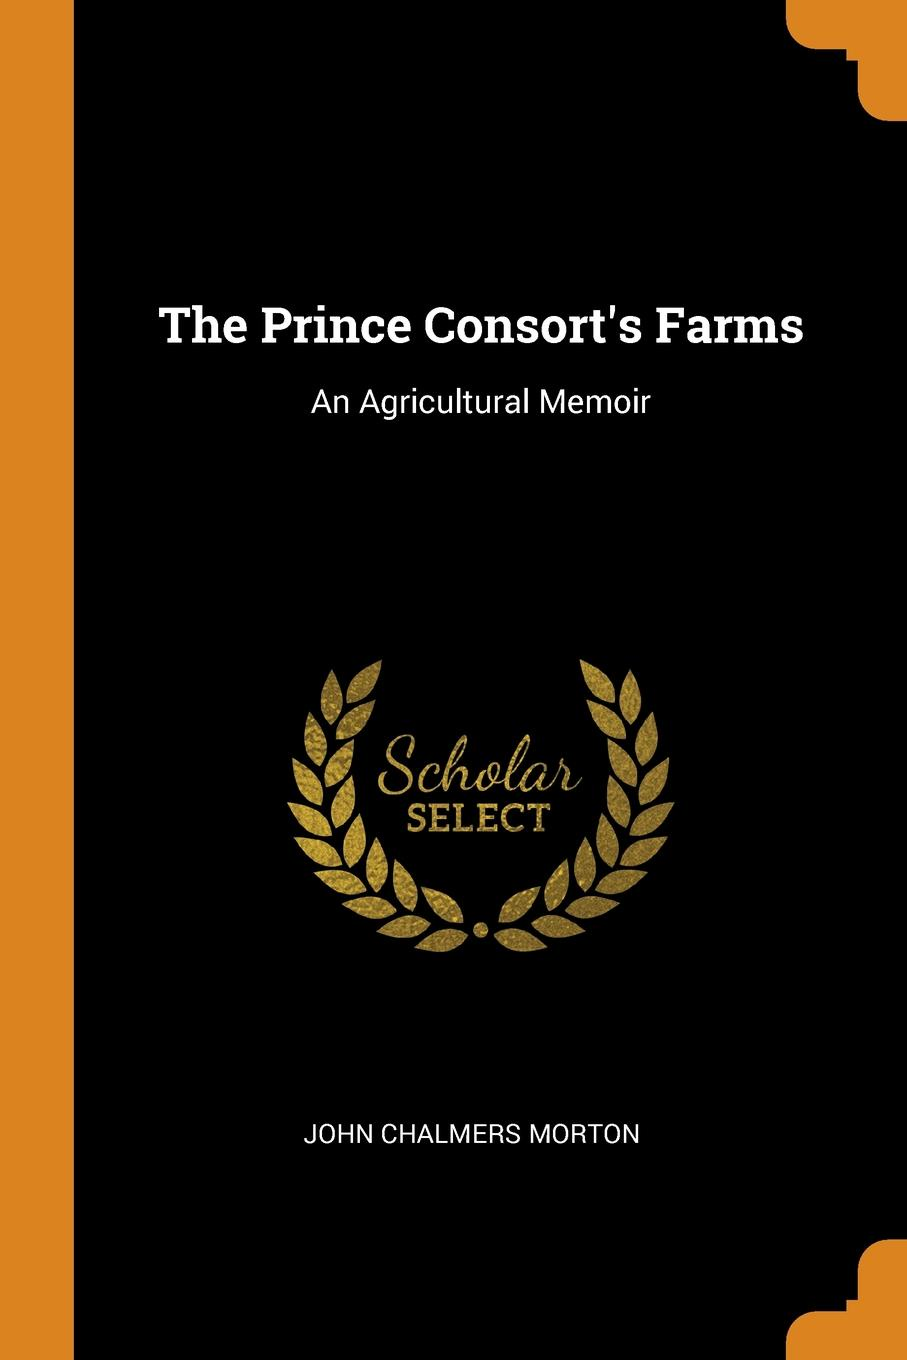 John Chalmers Morton. The Prince Consort.s Farms. An Agricultural Memoir